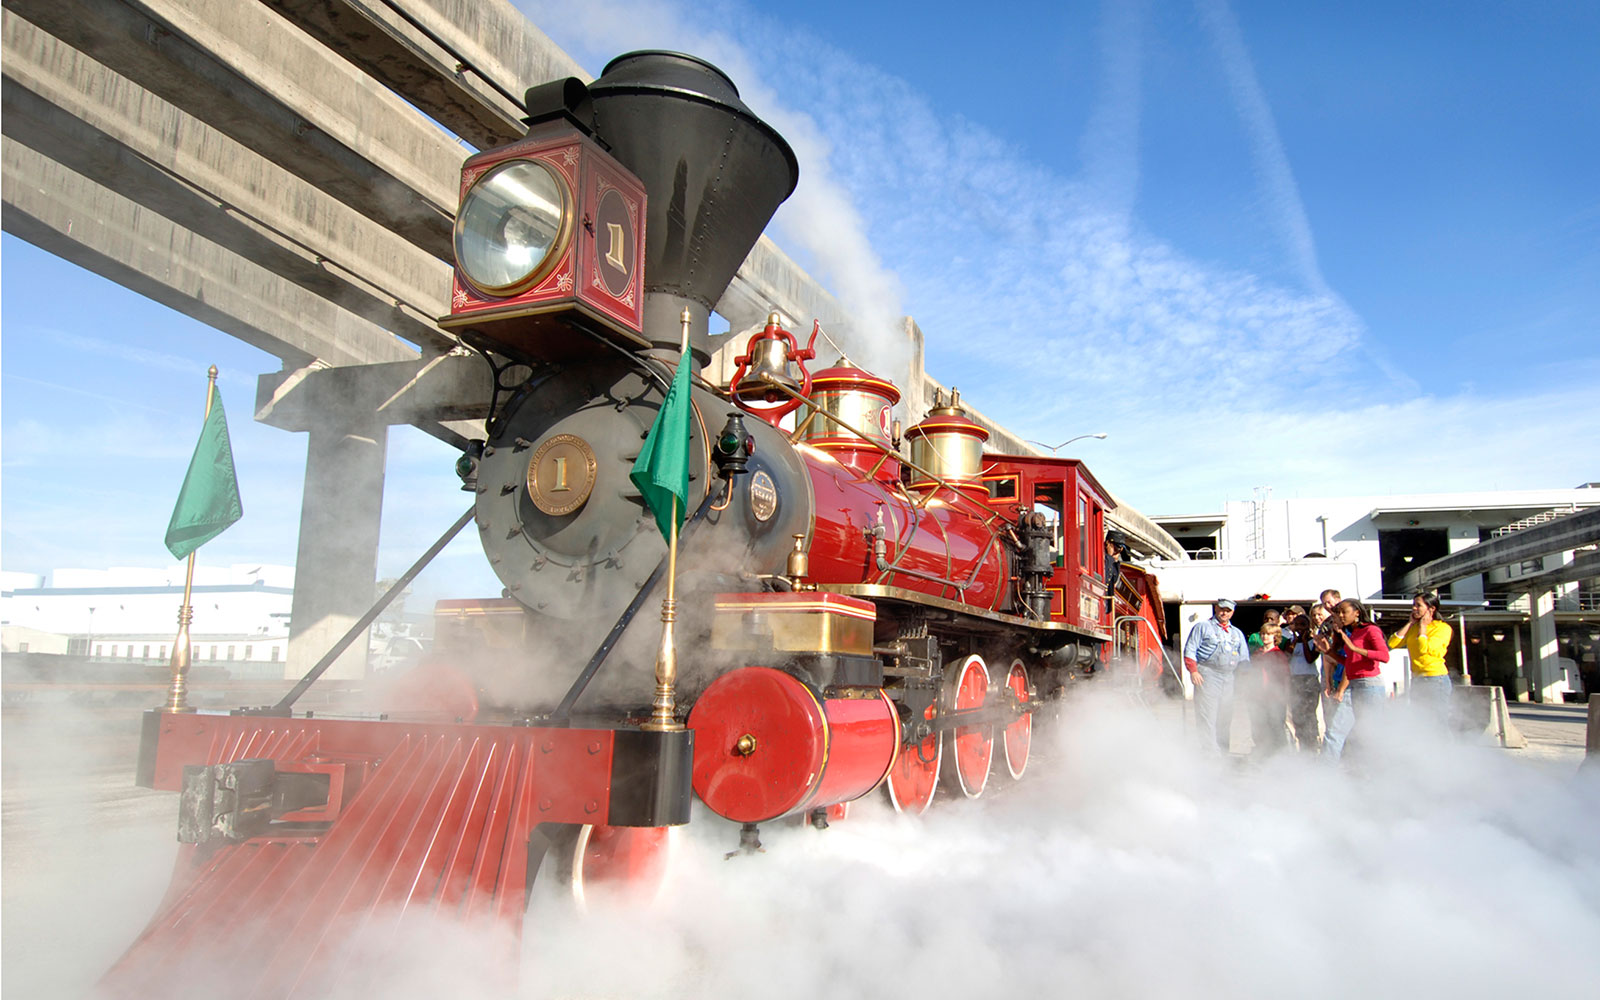 Things You Didn't Know About Disney Parks: Disneyland Railroad